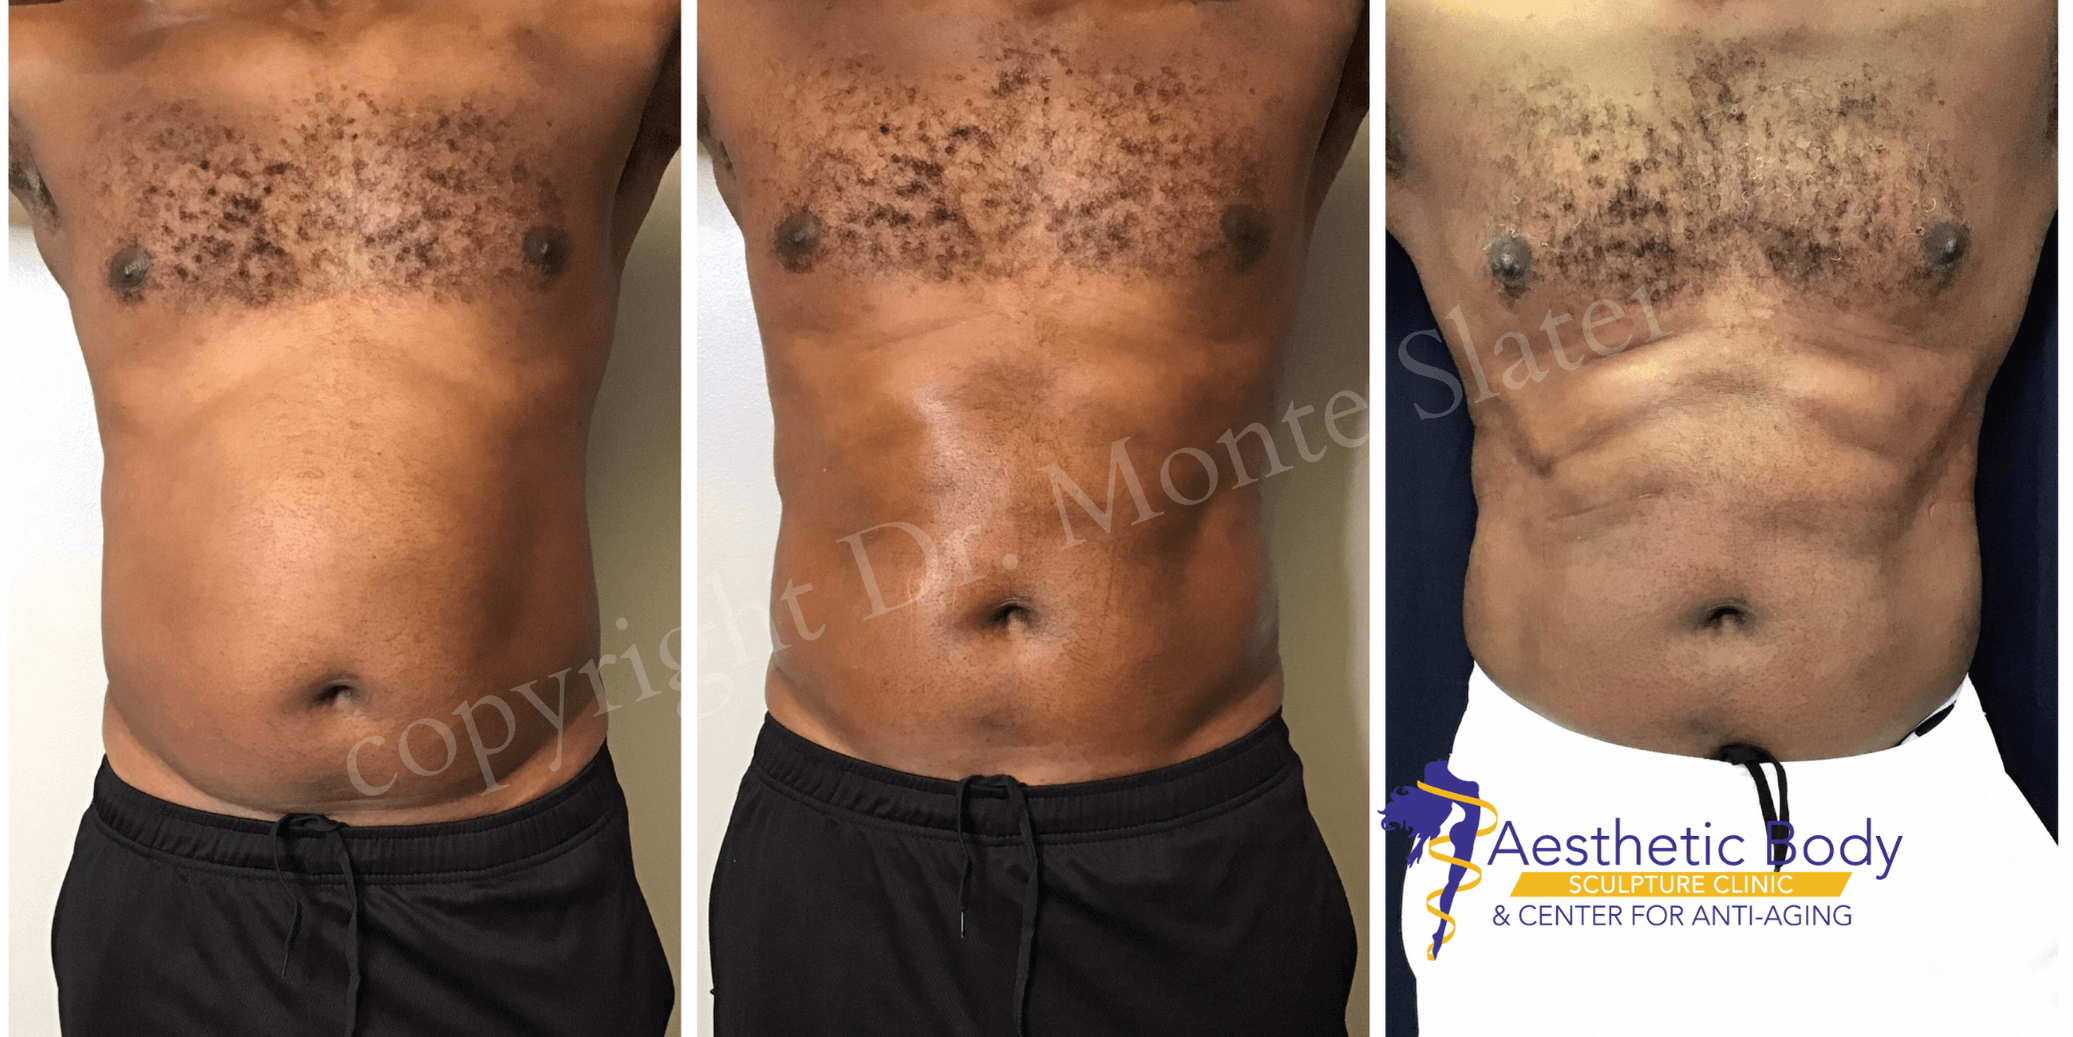 Before and After 2 PHYSIQ Body Contouring Treatments with Dr. Monte Slater